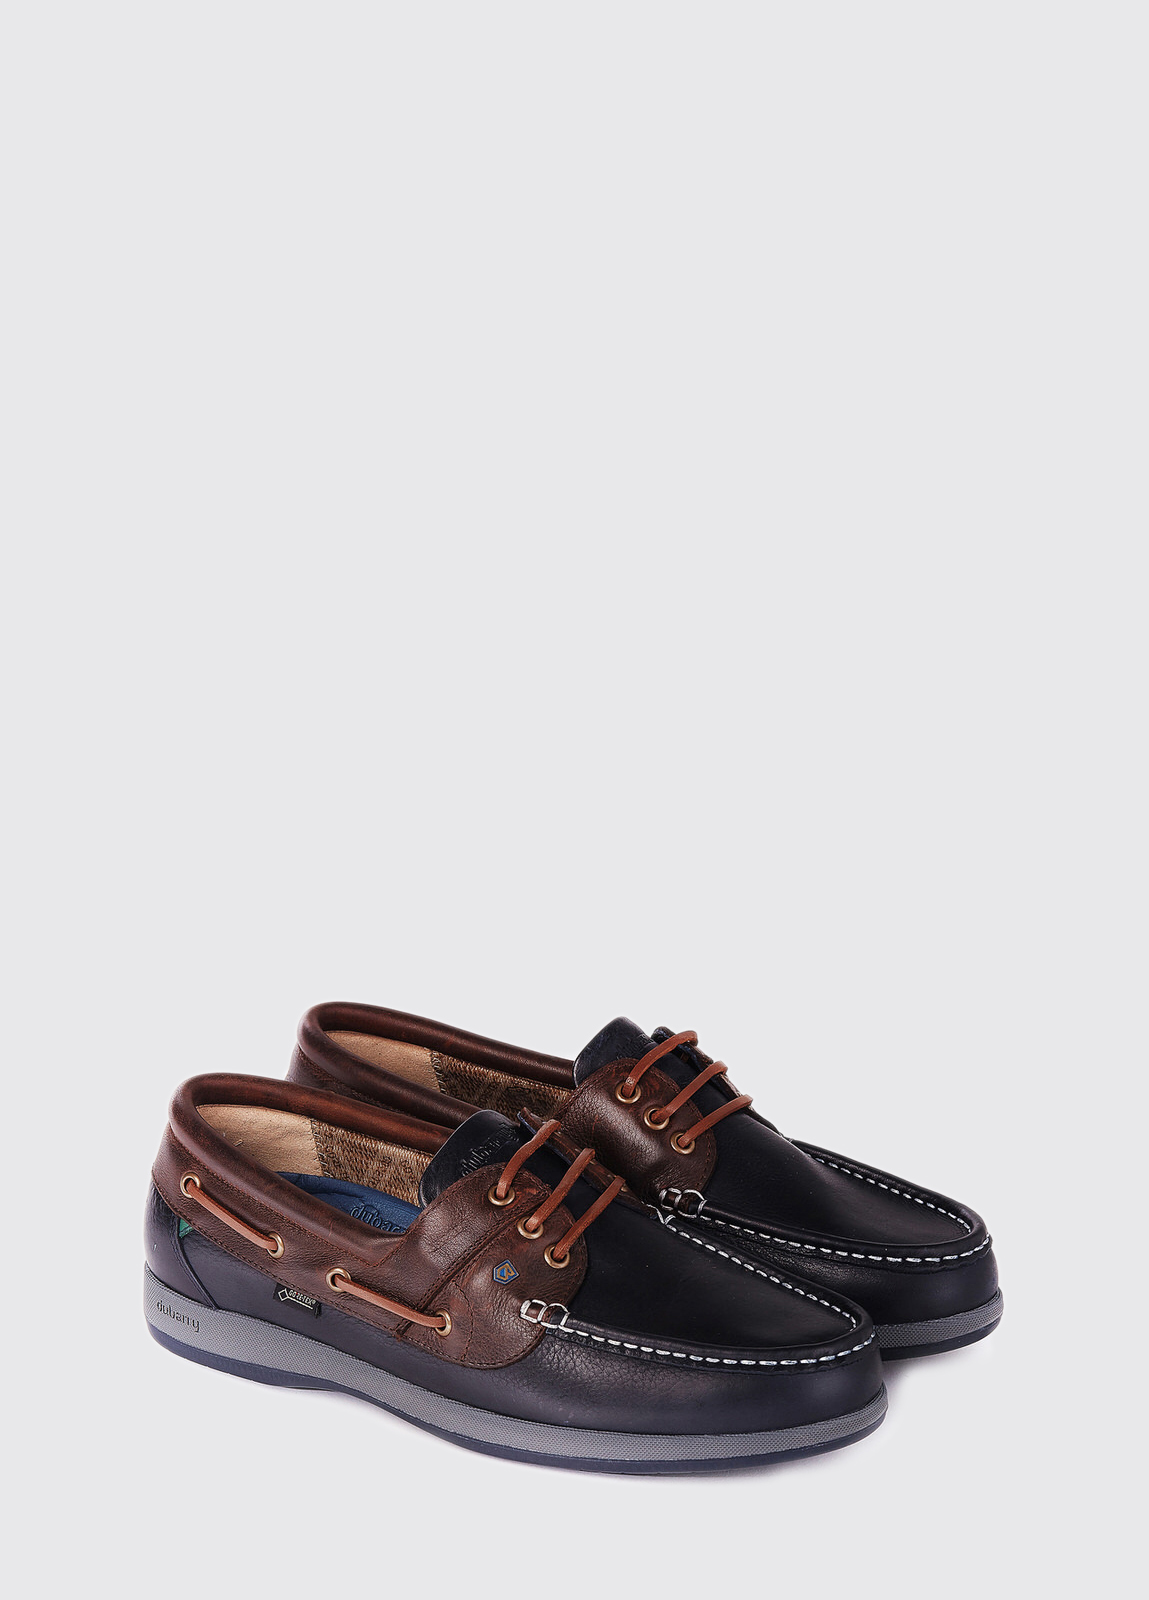 Mariner Moccasin - Navy/Brown